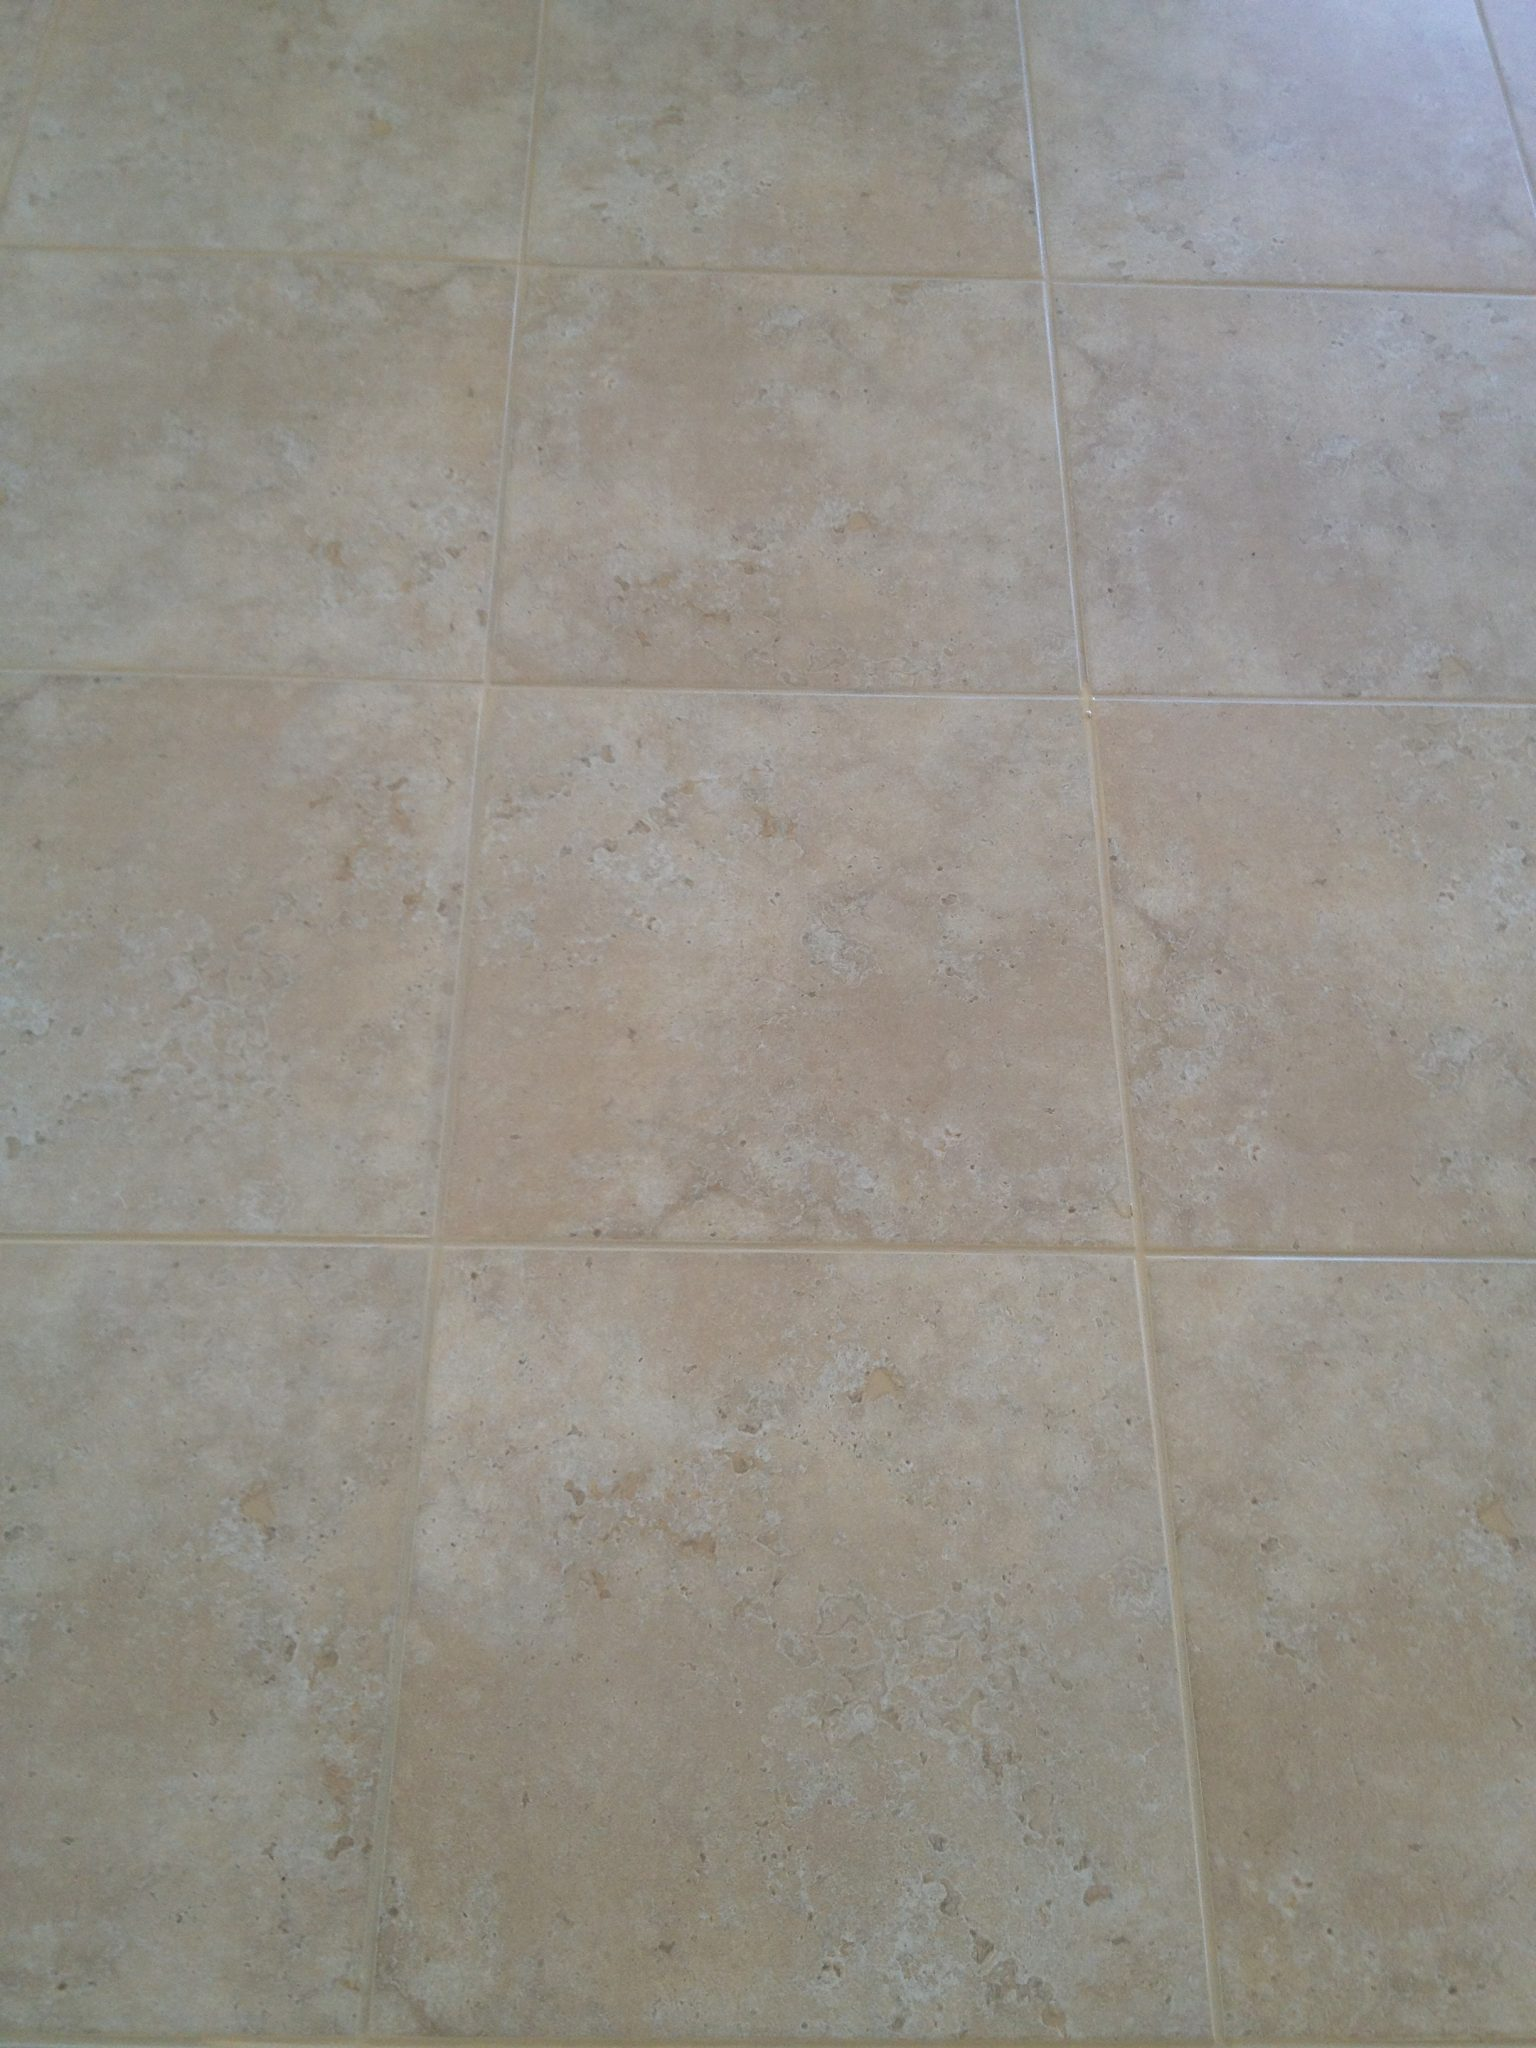 Grout After Cleaning Color Sealing Photo Credit Az Tile Care Tucson